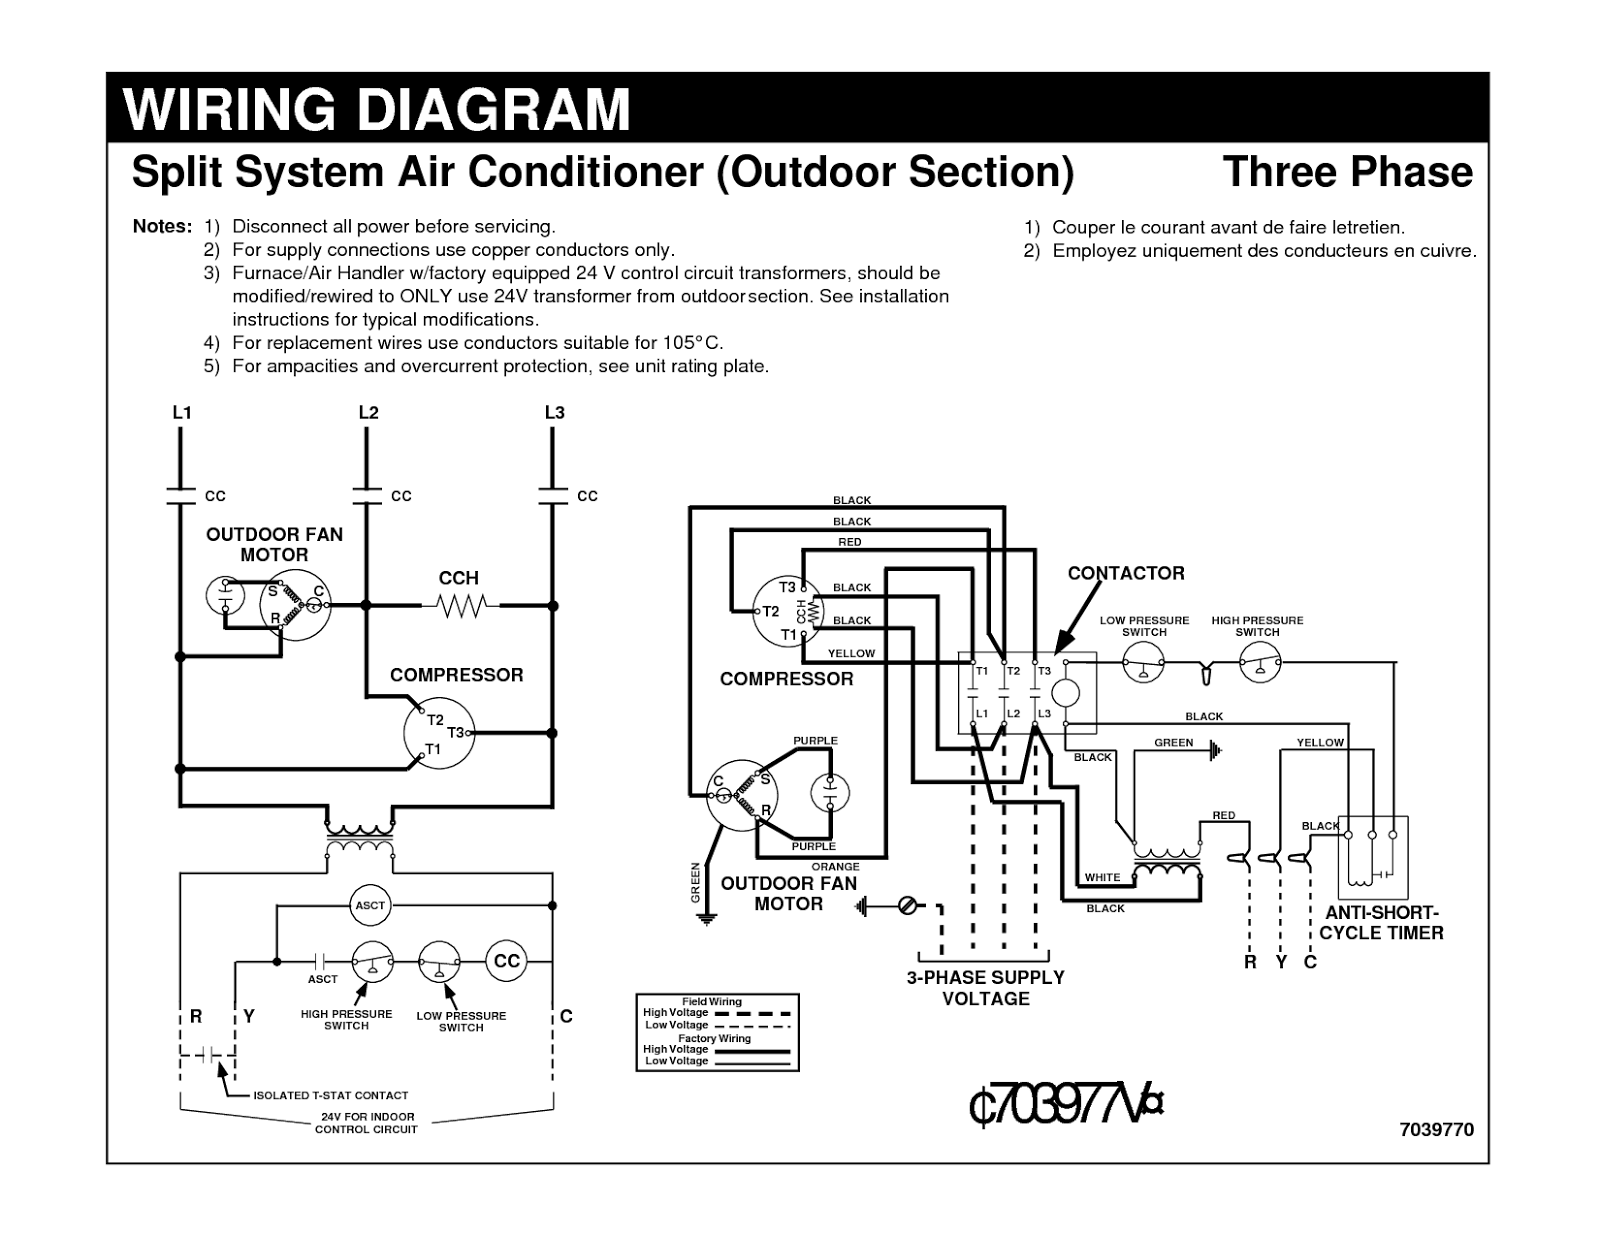 medium resolution of hvac panel wiring wiring diagram detailed hvac fan relay wiring diagram hvac panel wiring trusted wiring